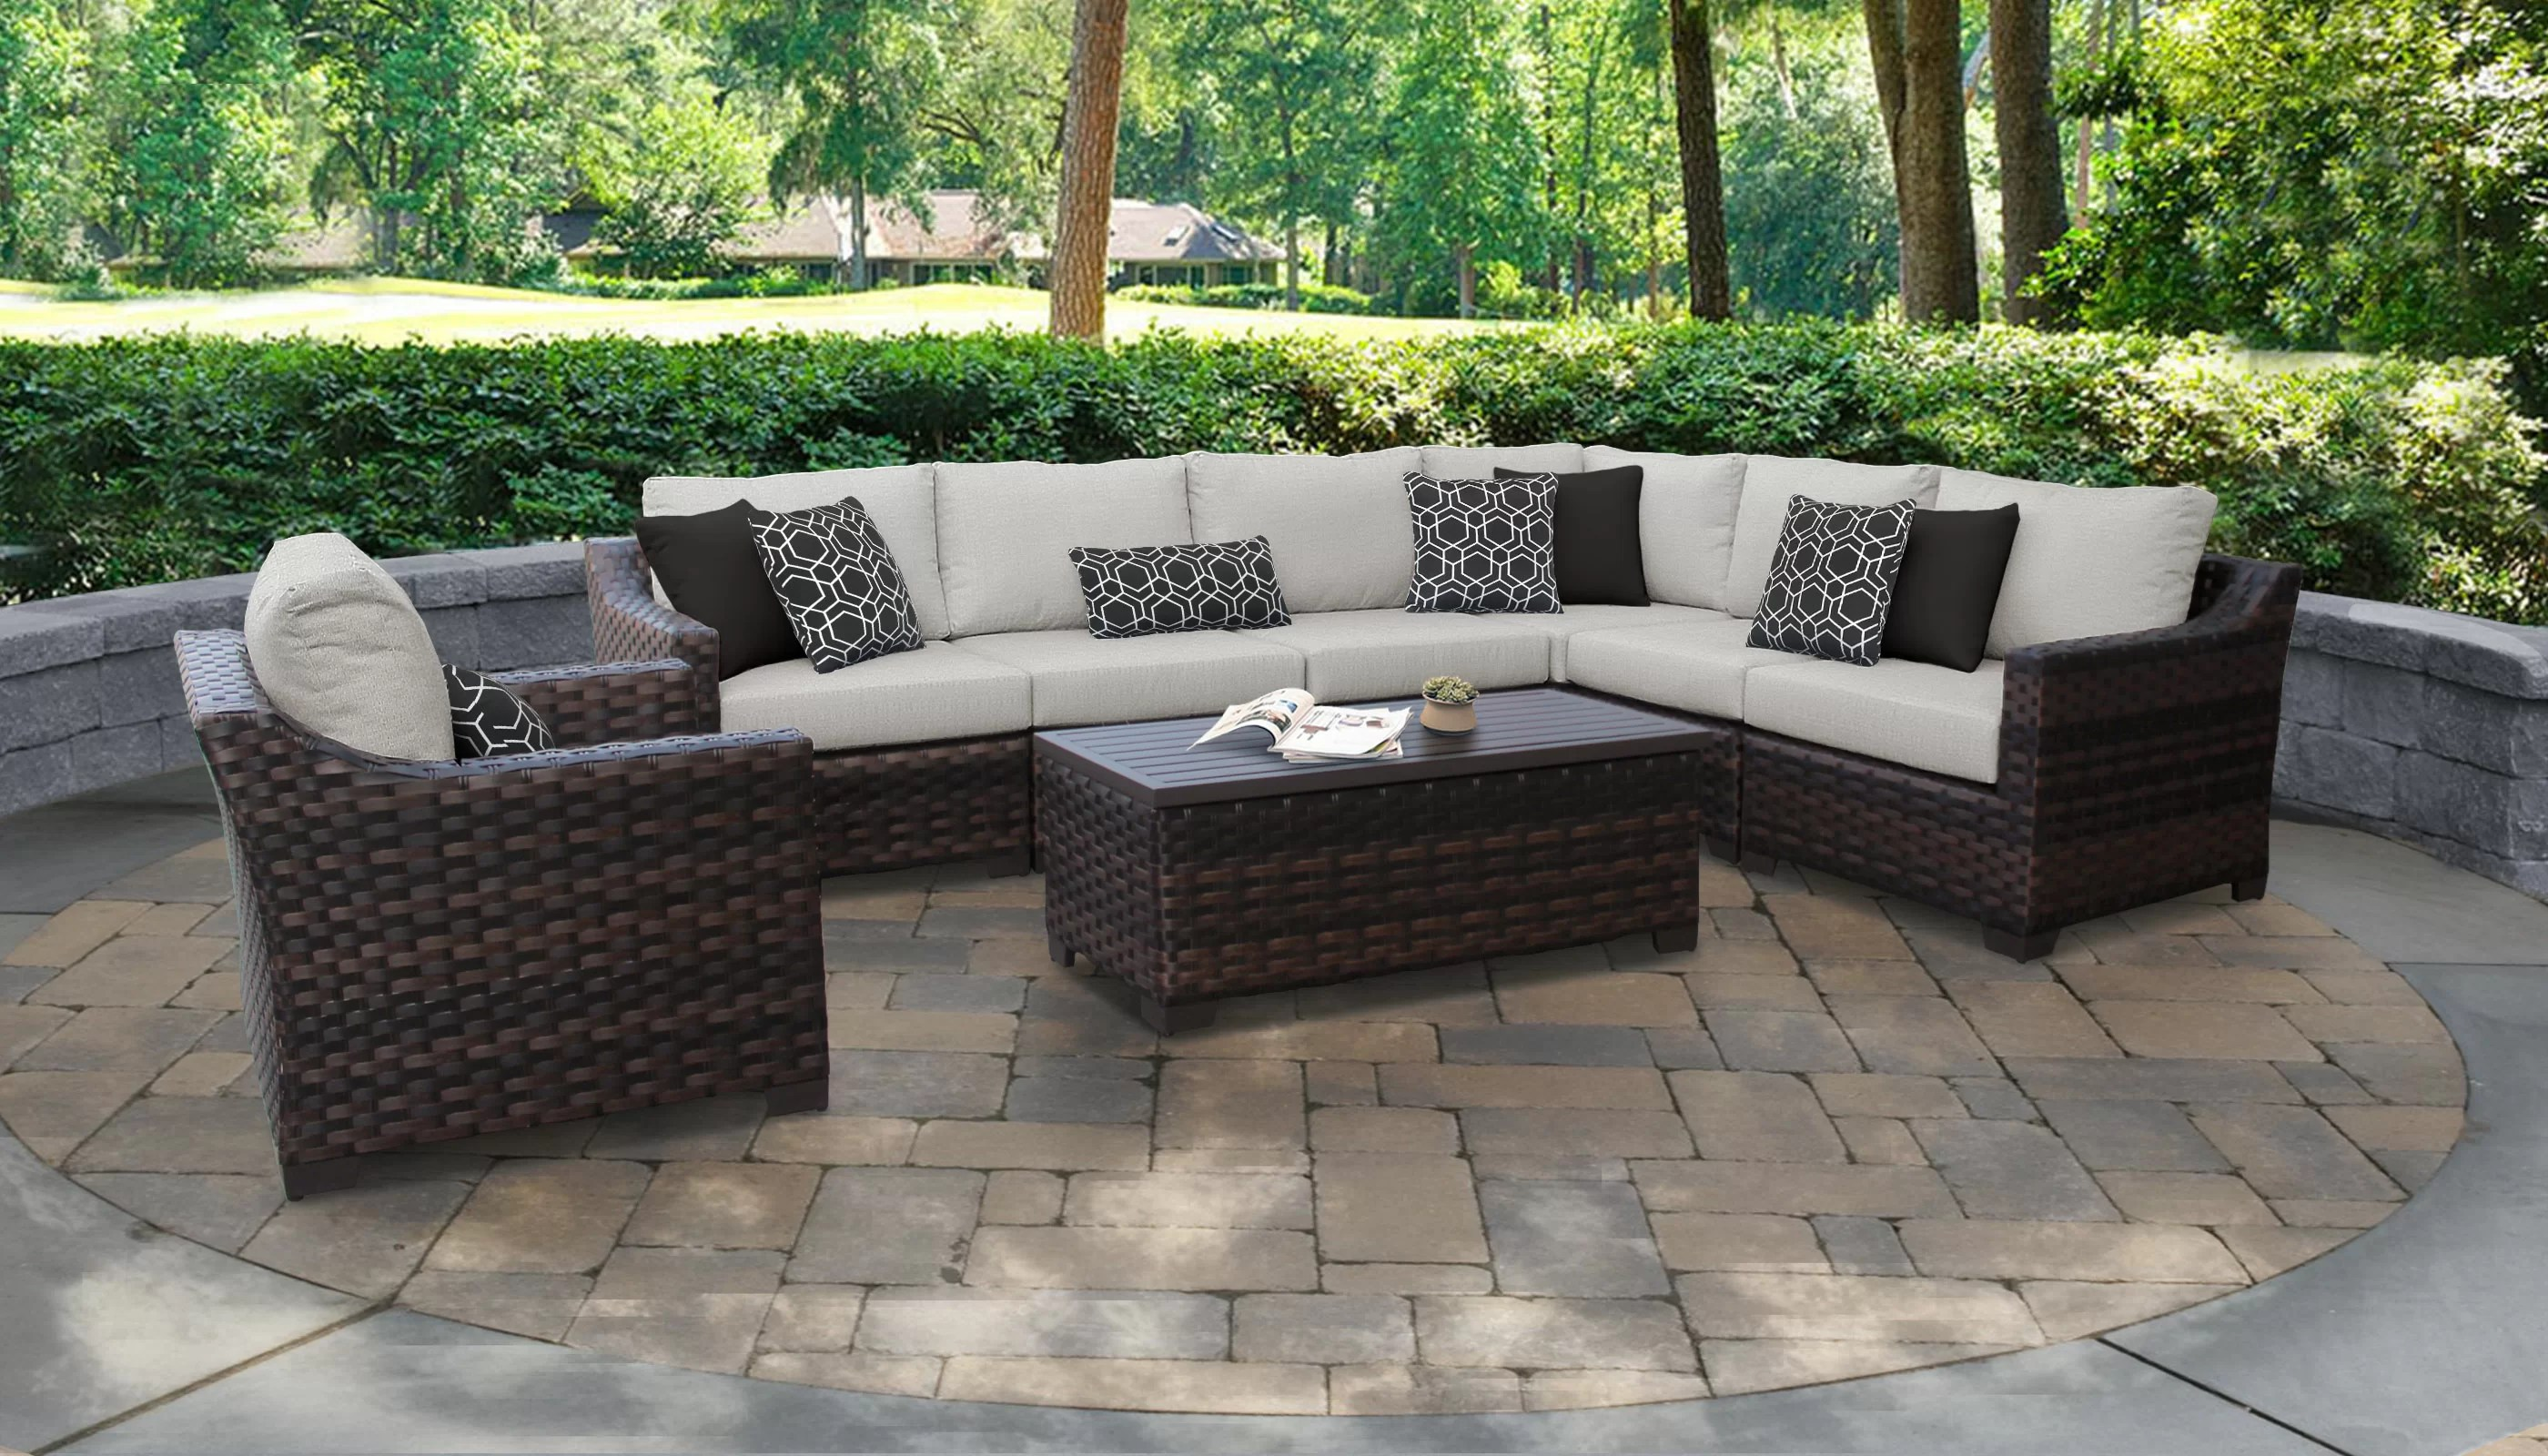 Rattan Corner Sofa Ireland Kathy Ireland Homes Gardens River Brook 8 Piece Outdoor Wicker Patio Furniture Set 08d